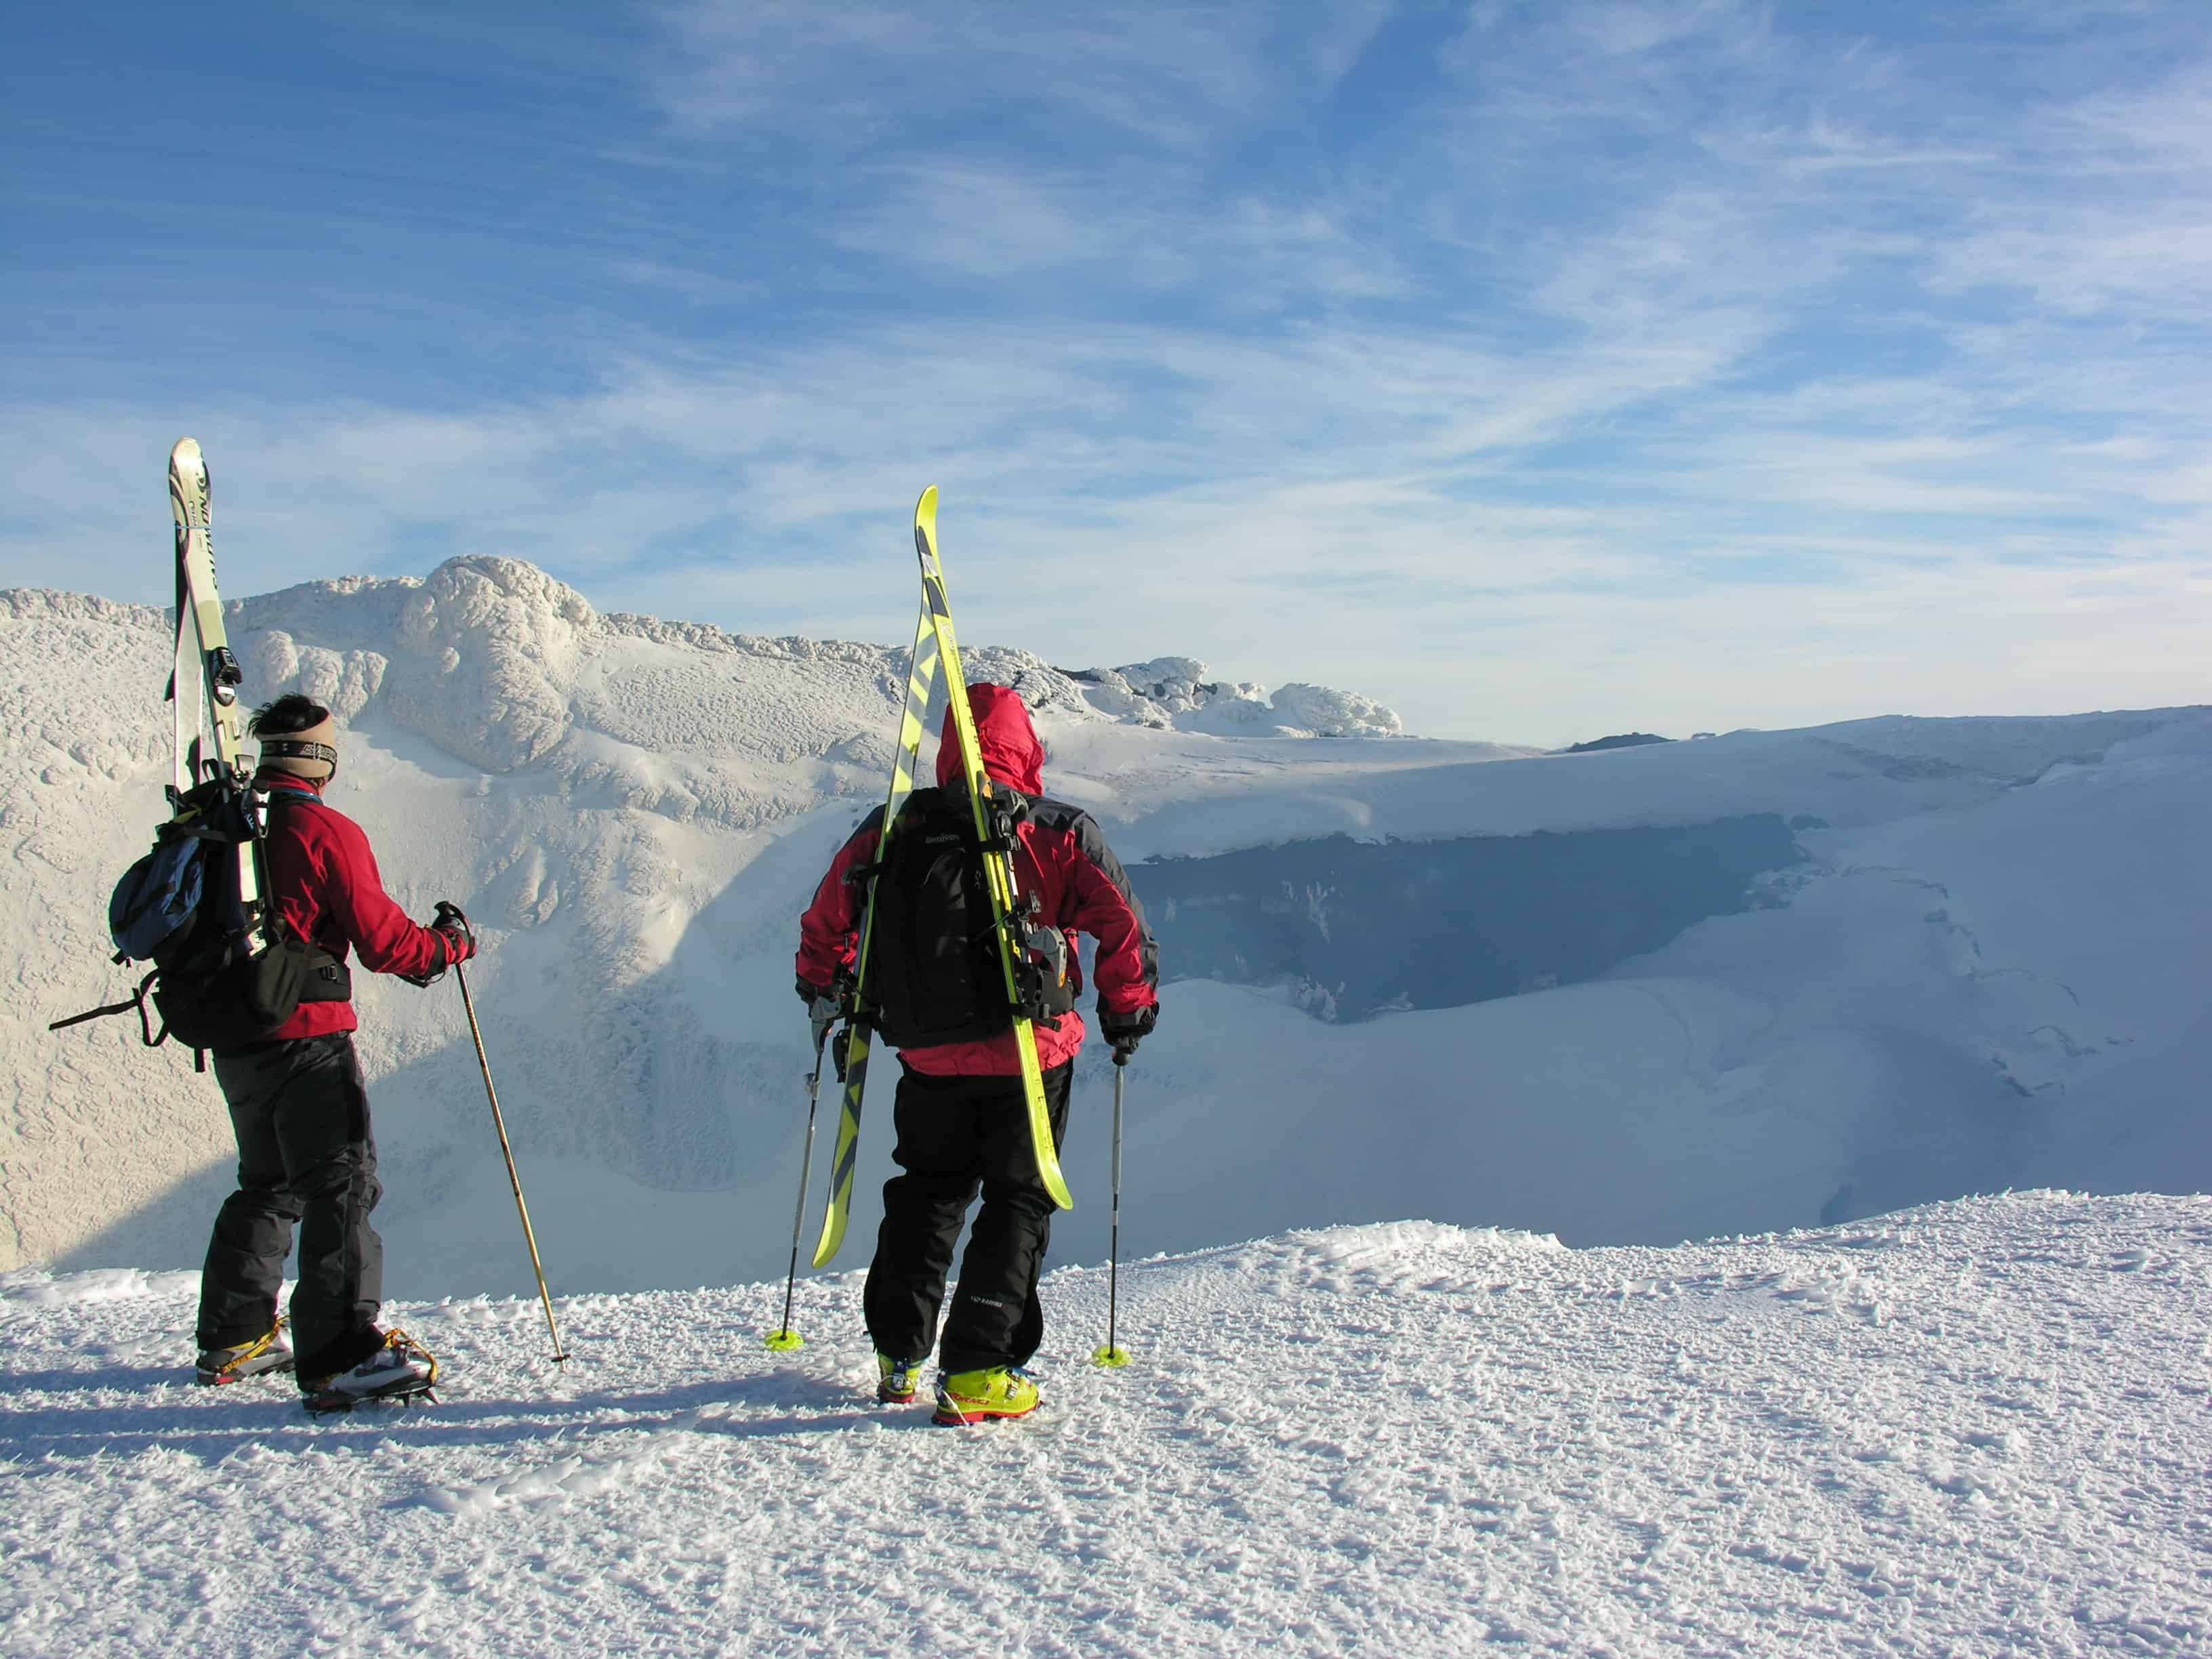 Villarrica Volcano ski resort will re-open in July 2016